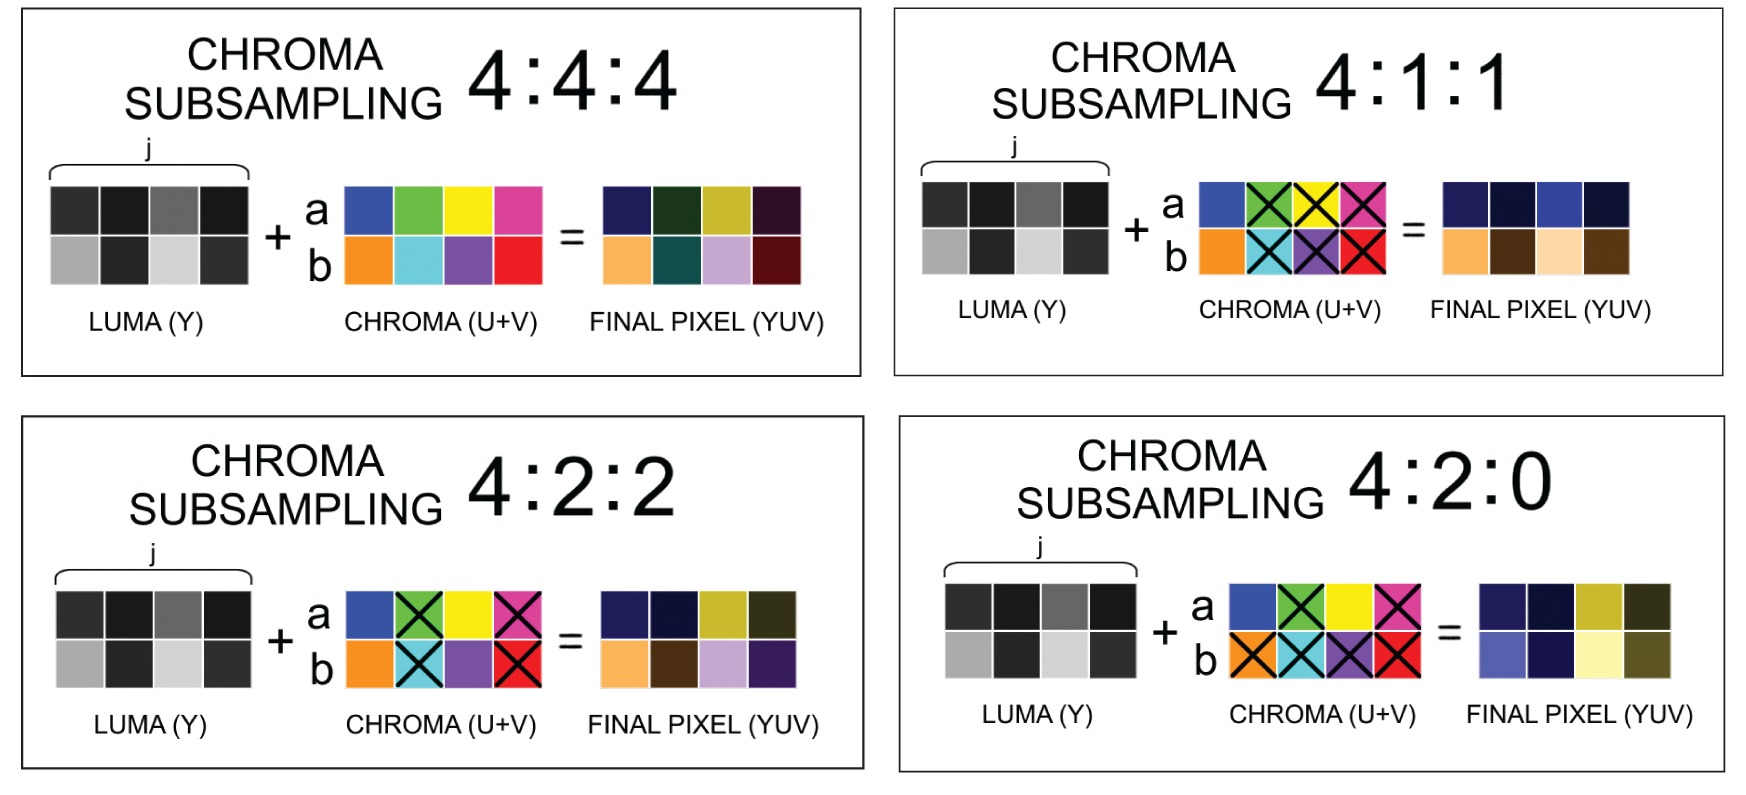 Common Chroma Subsampling Ratios. Blocks of color showing Chroma Subsampling of 4:4:4, 4:1:1:1, 4:2:2 and 4:2:0 color information.